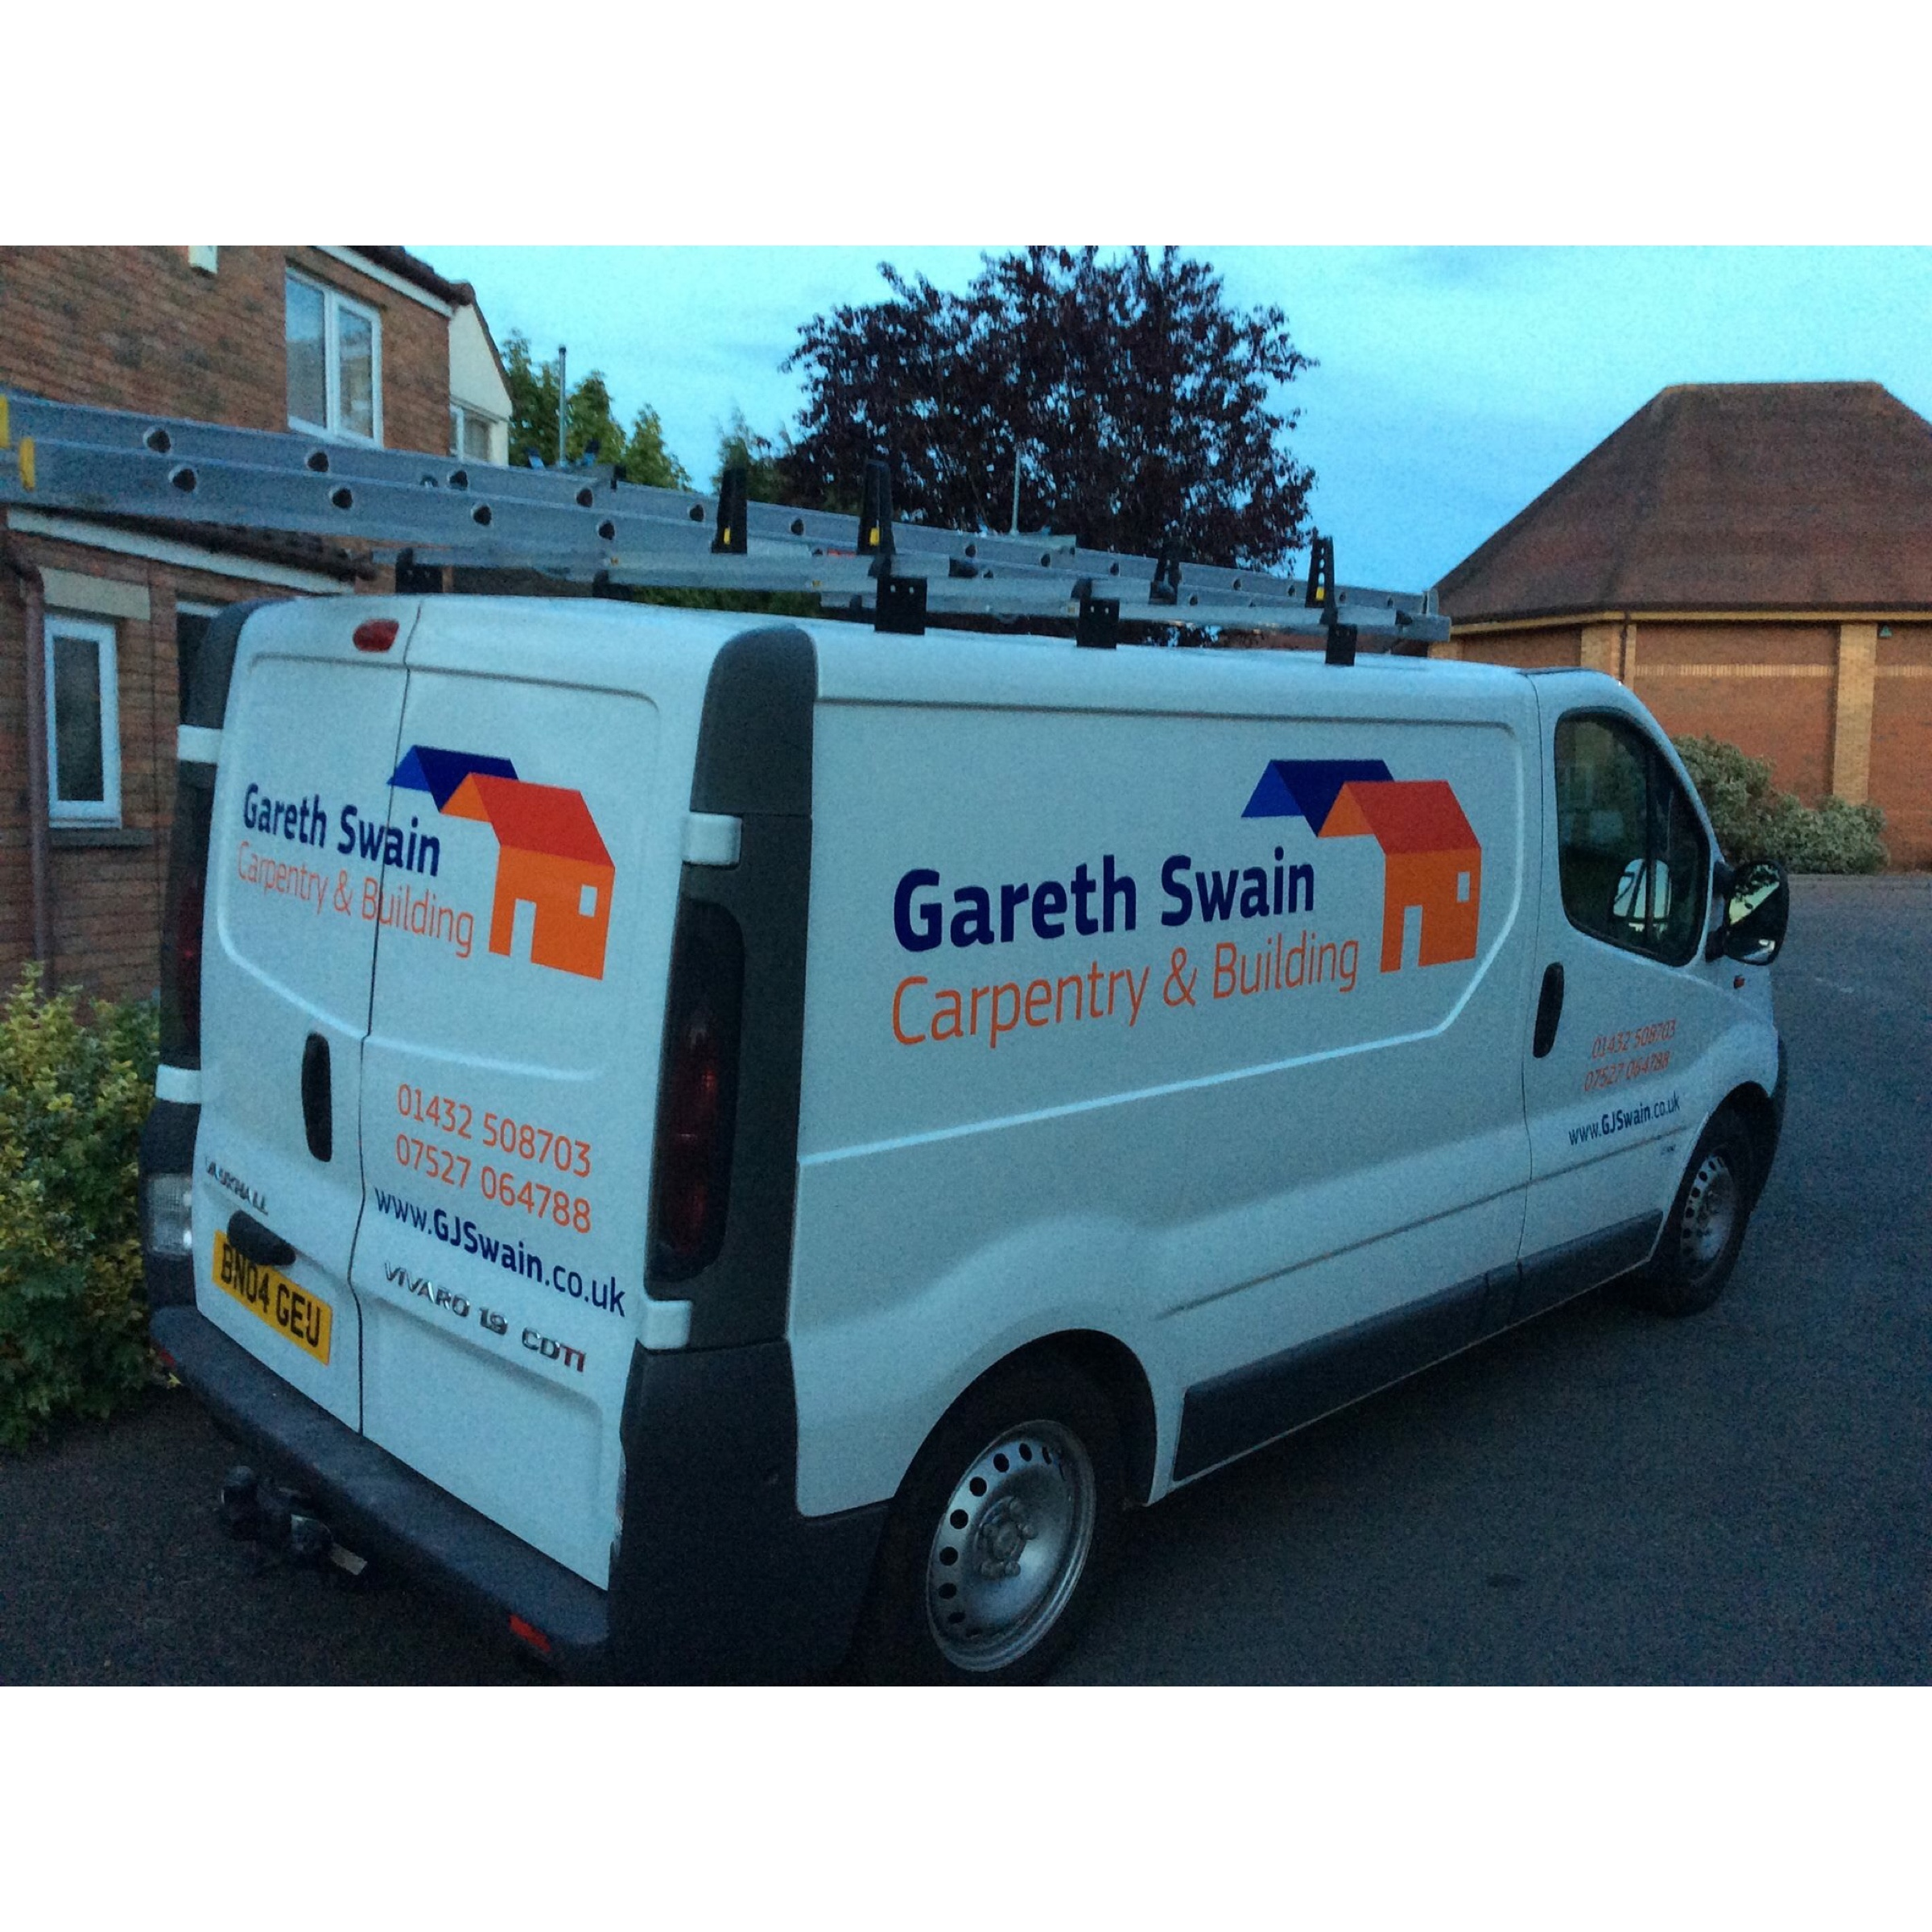 Gareth Swain Carpentry & Building - hereford, Herefordshire  - 07527 064788 | ShowMeLocal.com